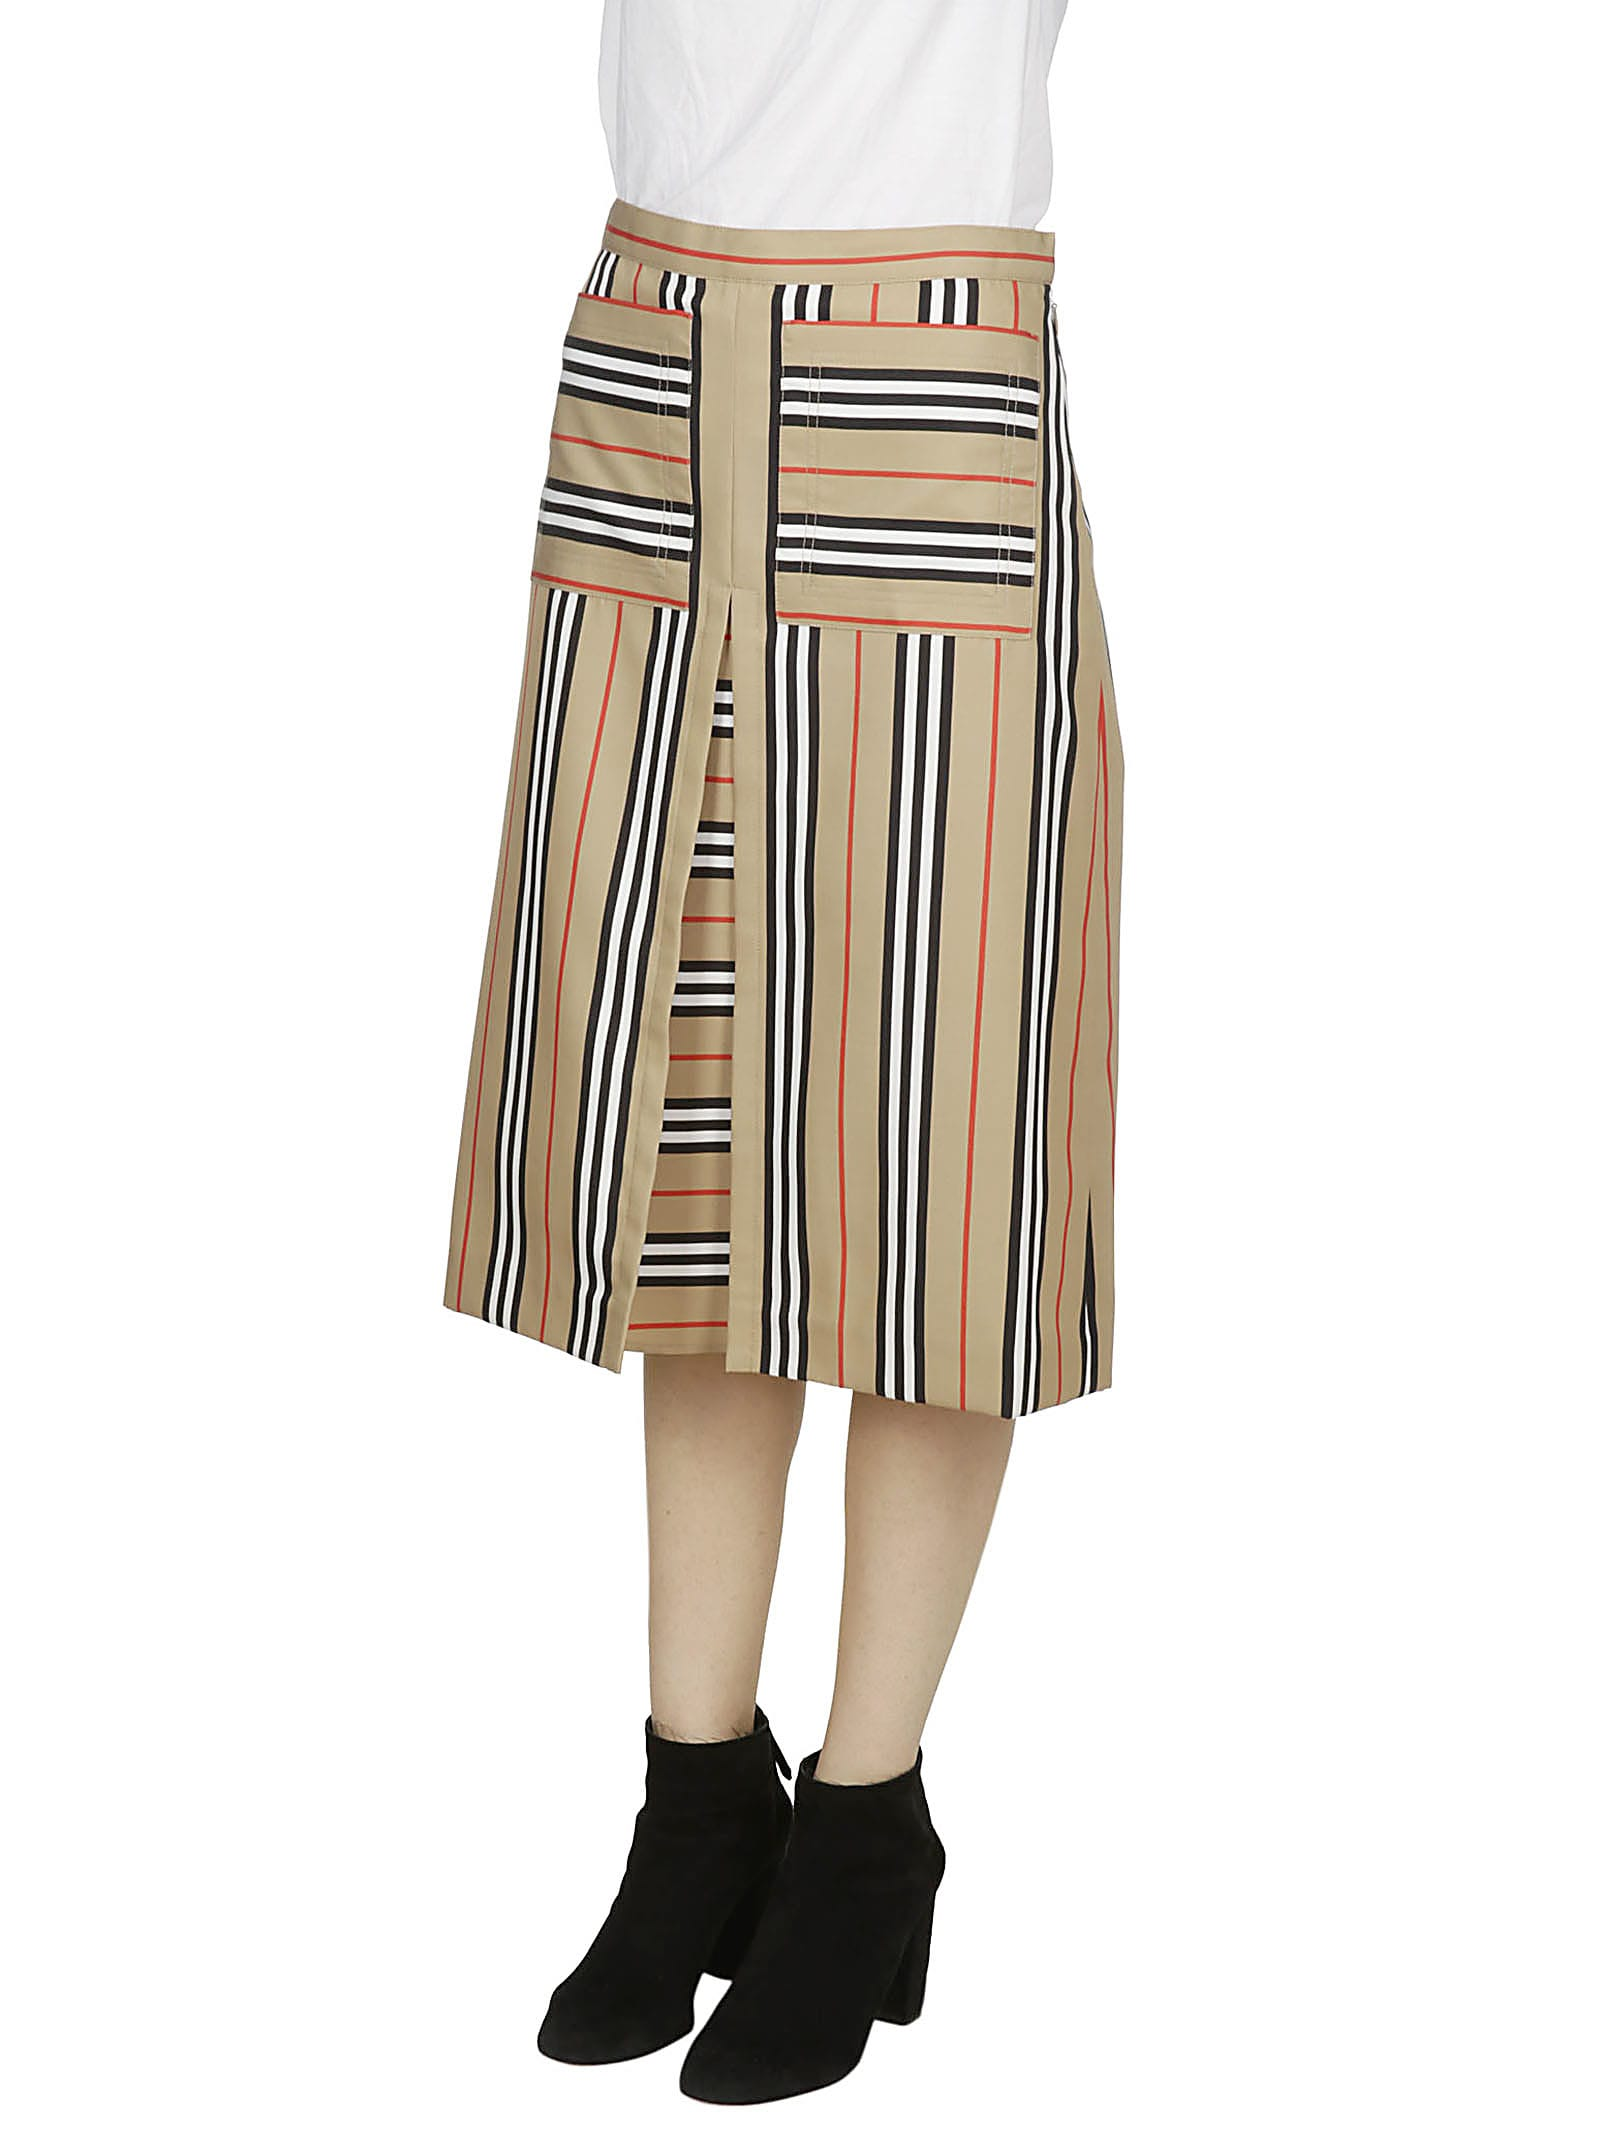 Animated Skirt burberry burberry animated skirt - archive beige - 11047926